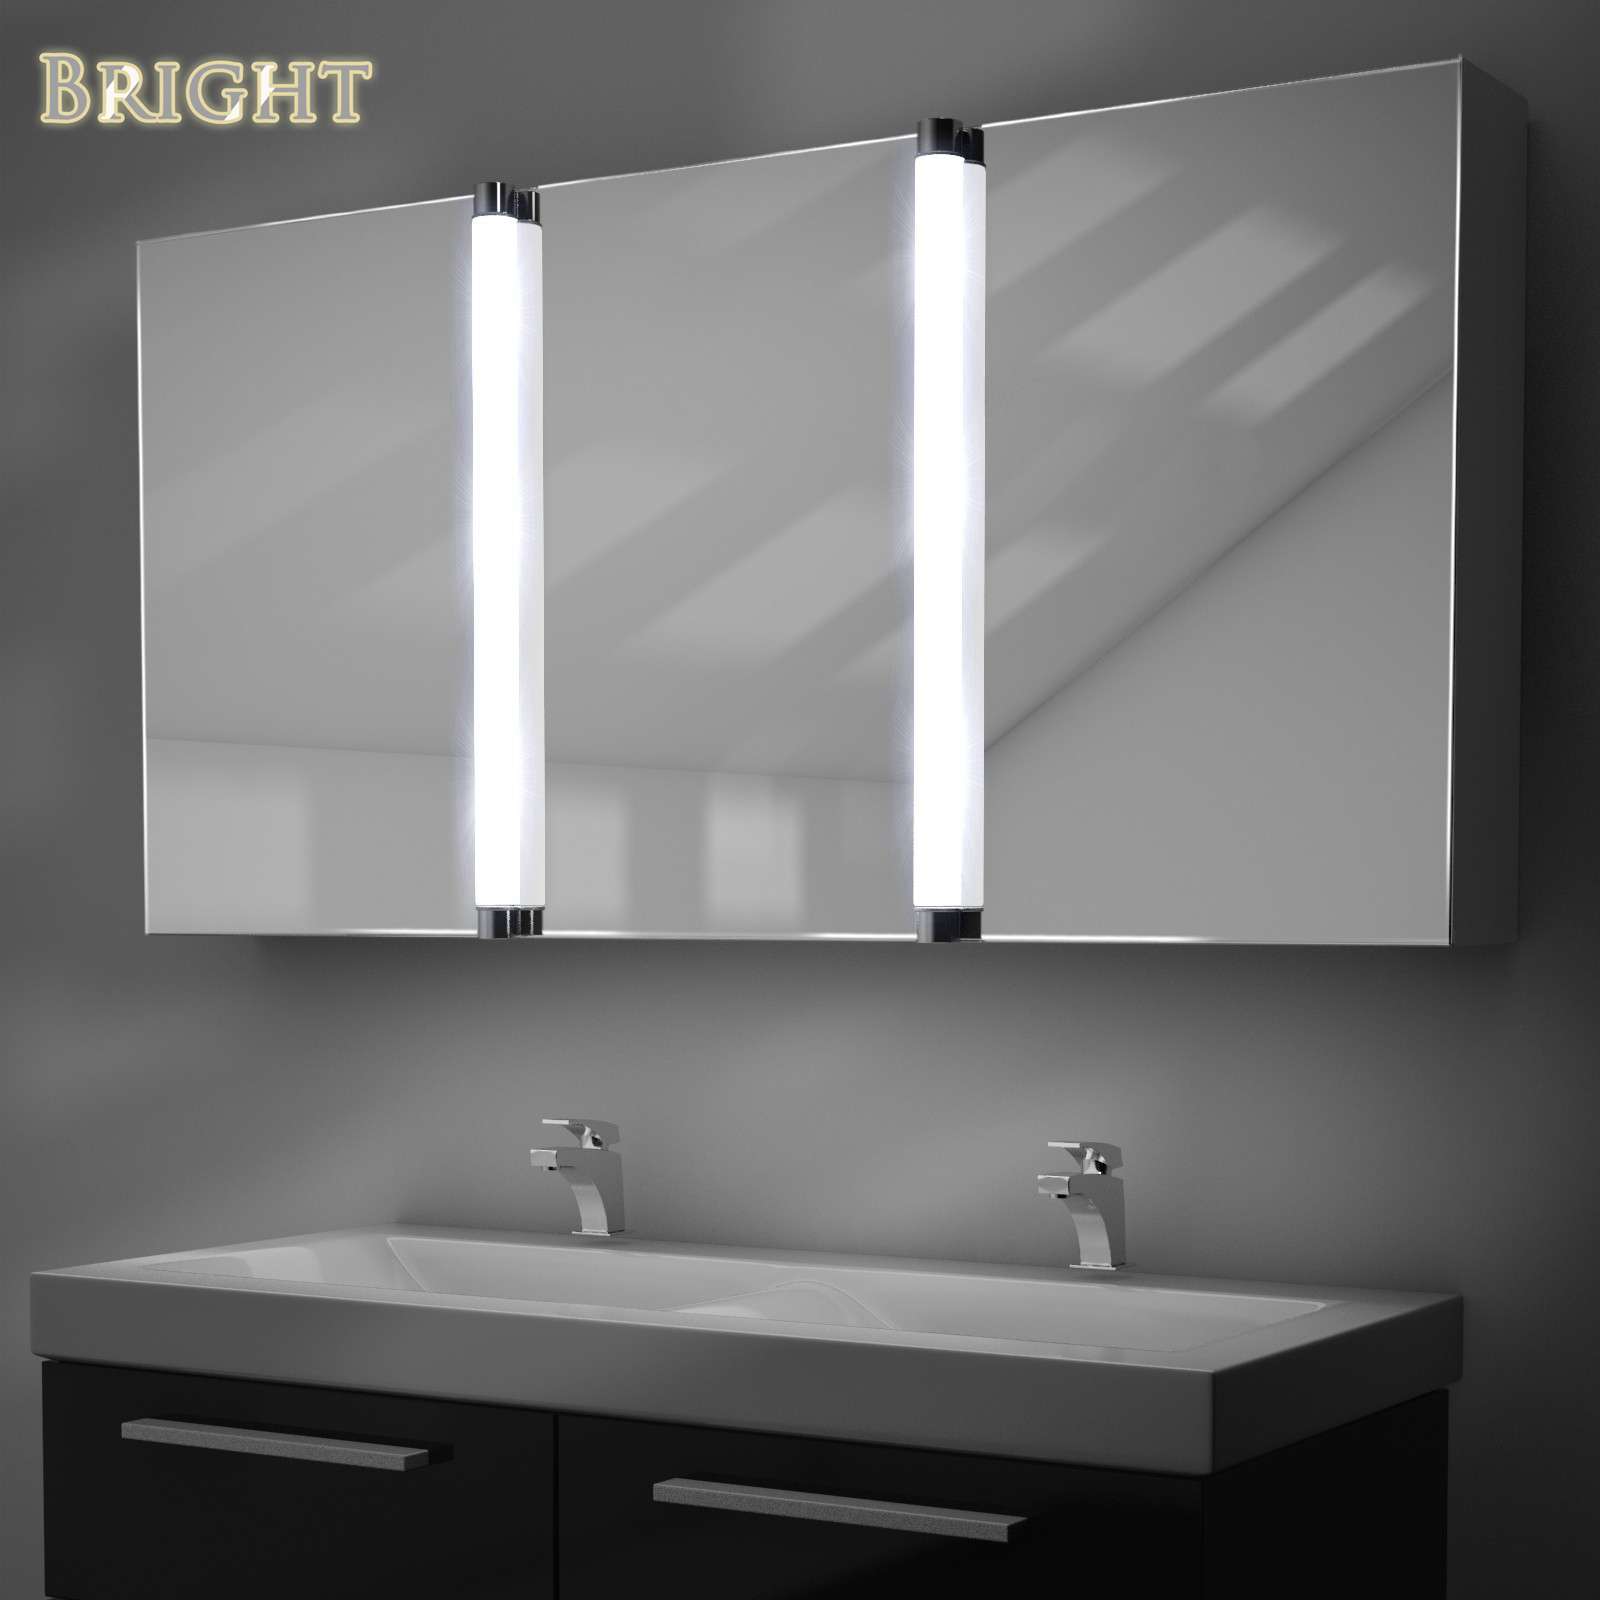 Lighted Mirrors For Bathroom